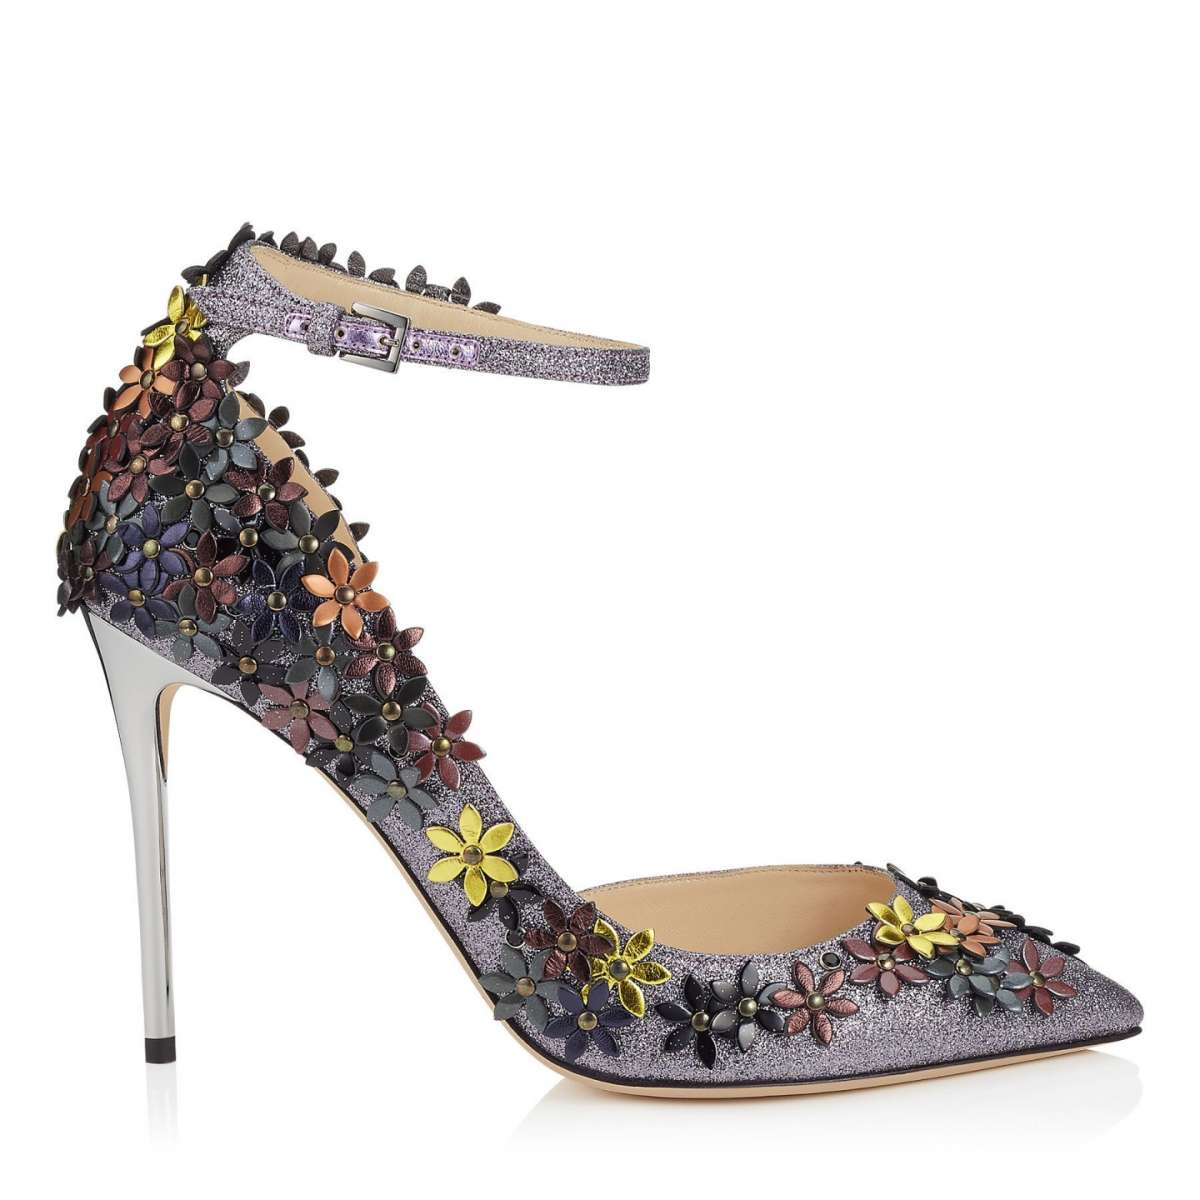 Mary jane Jimmy Choo